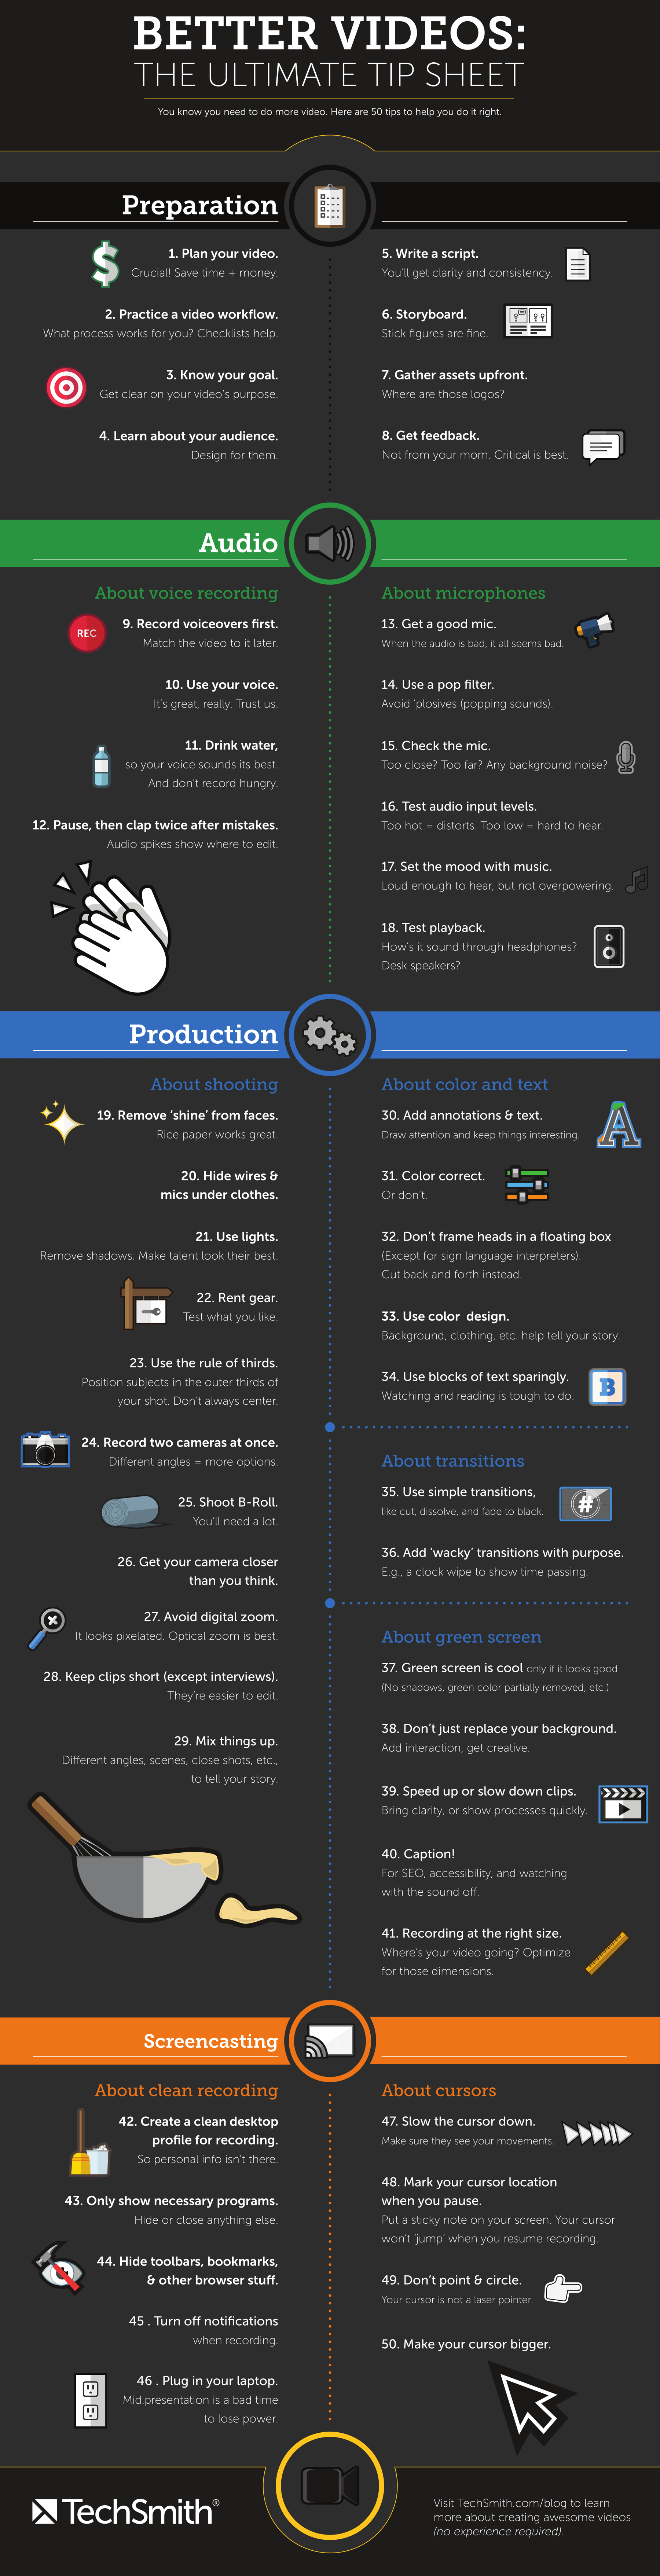 50 Video Editing Tips You Need for Better Videos [Infographic]